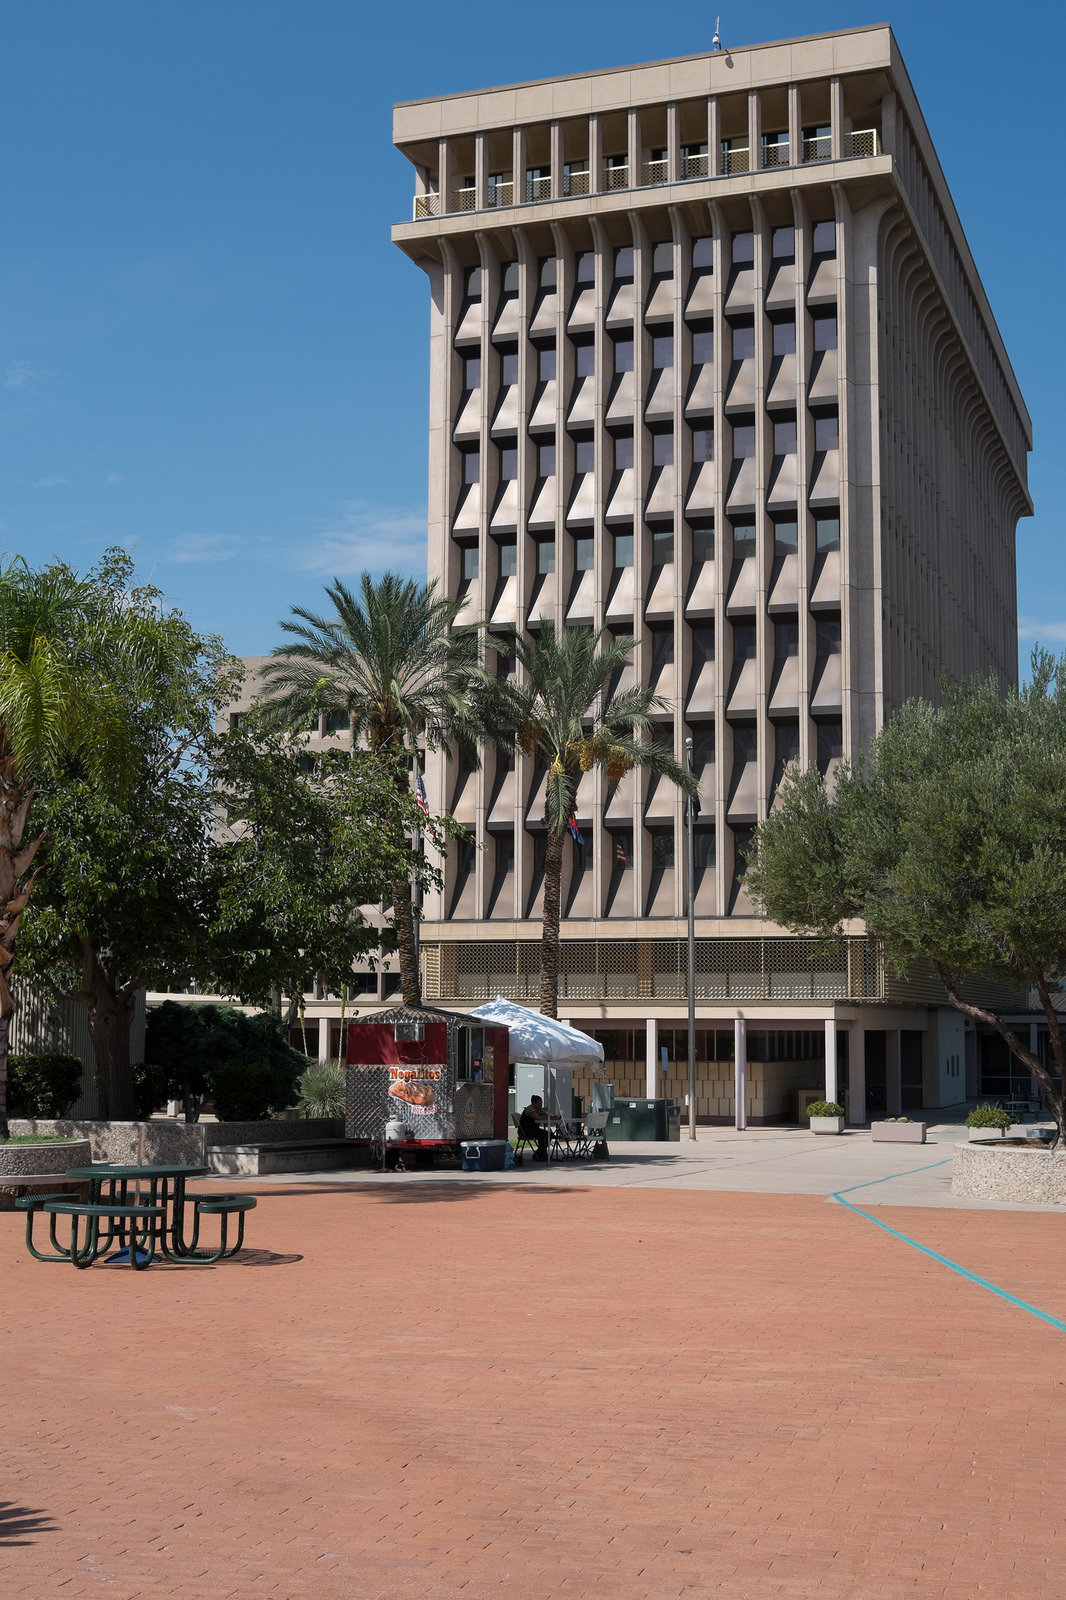 Tucson City Court